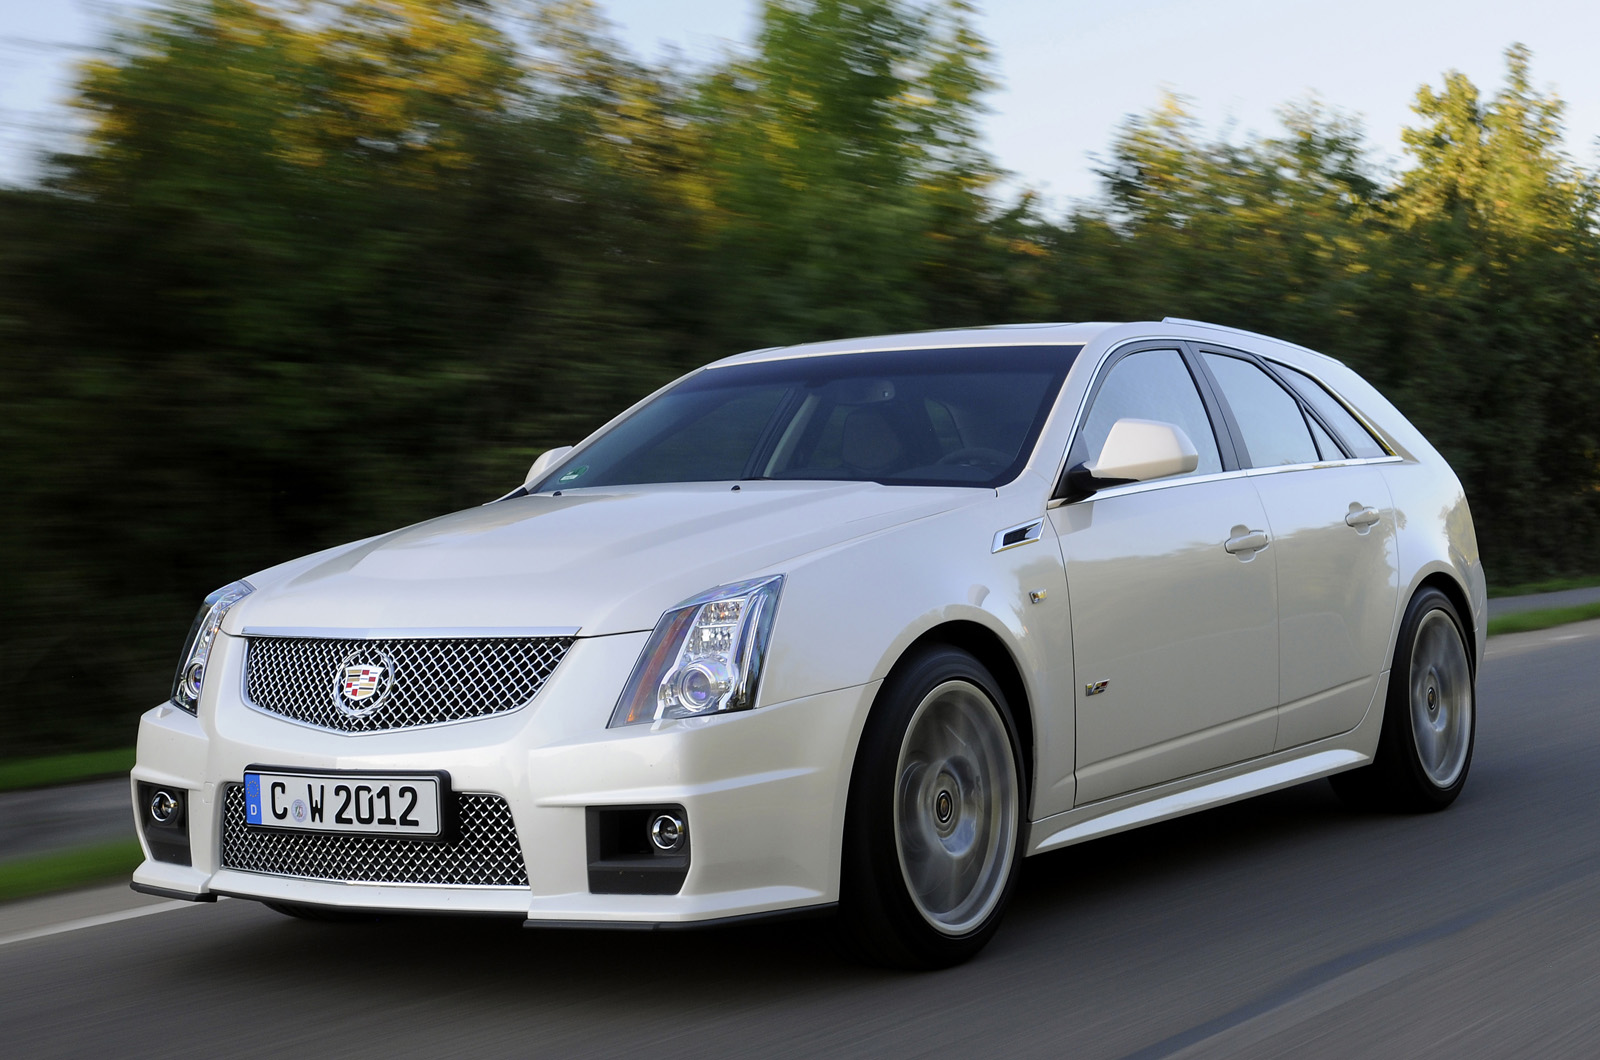 cadillac cts sport wagon first drive review autocar. Black Bedroom Furniture Sets. Home Design Ideas